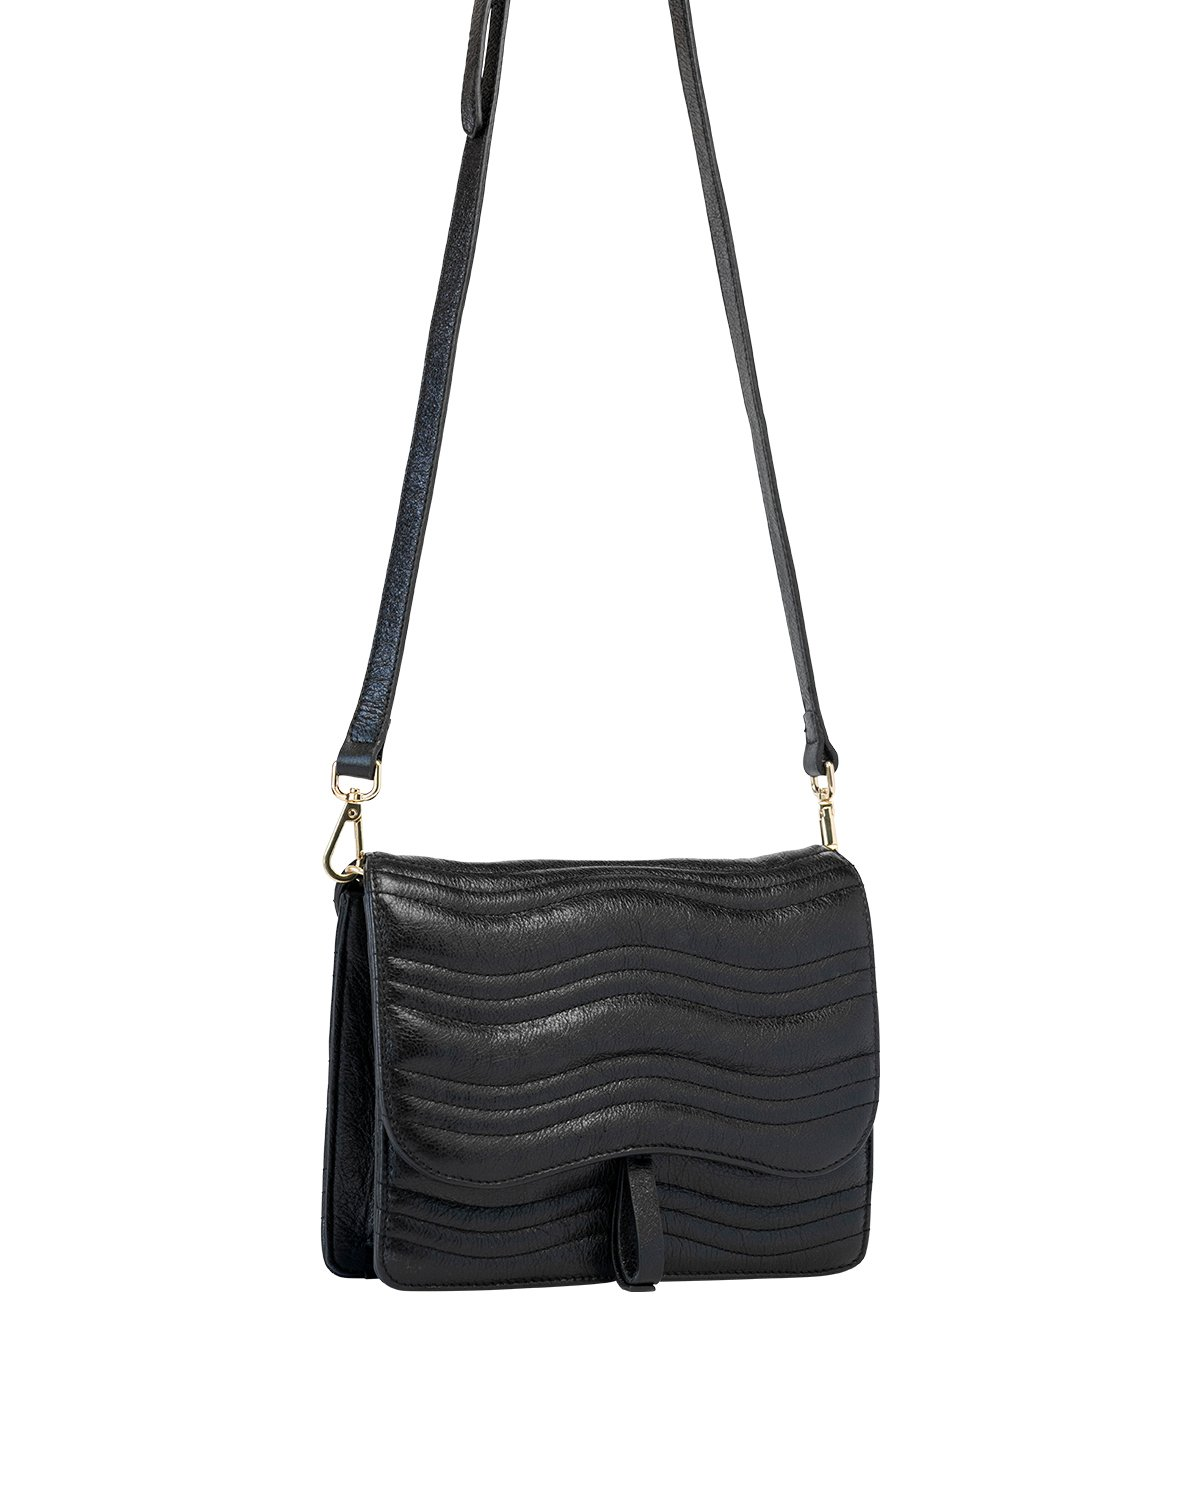 Kilesa luxury bag tracolla in pelle nera laminata